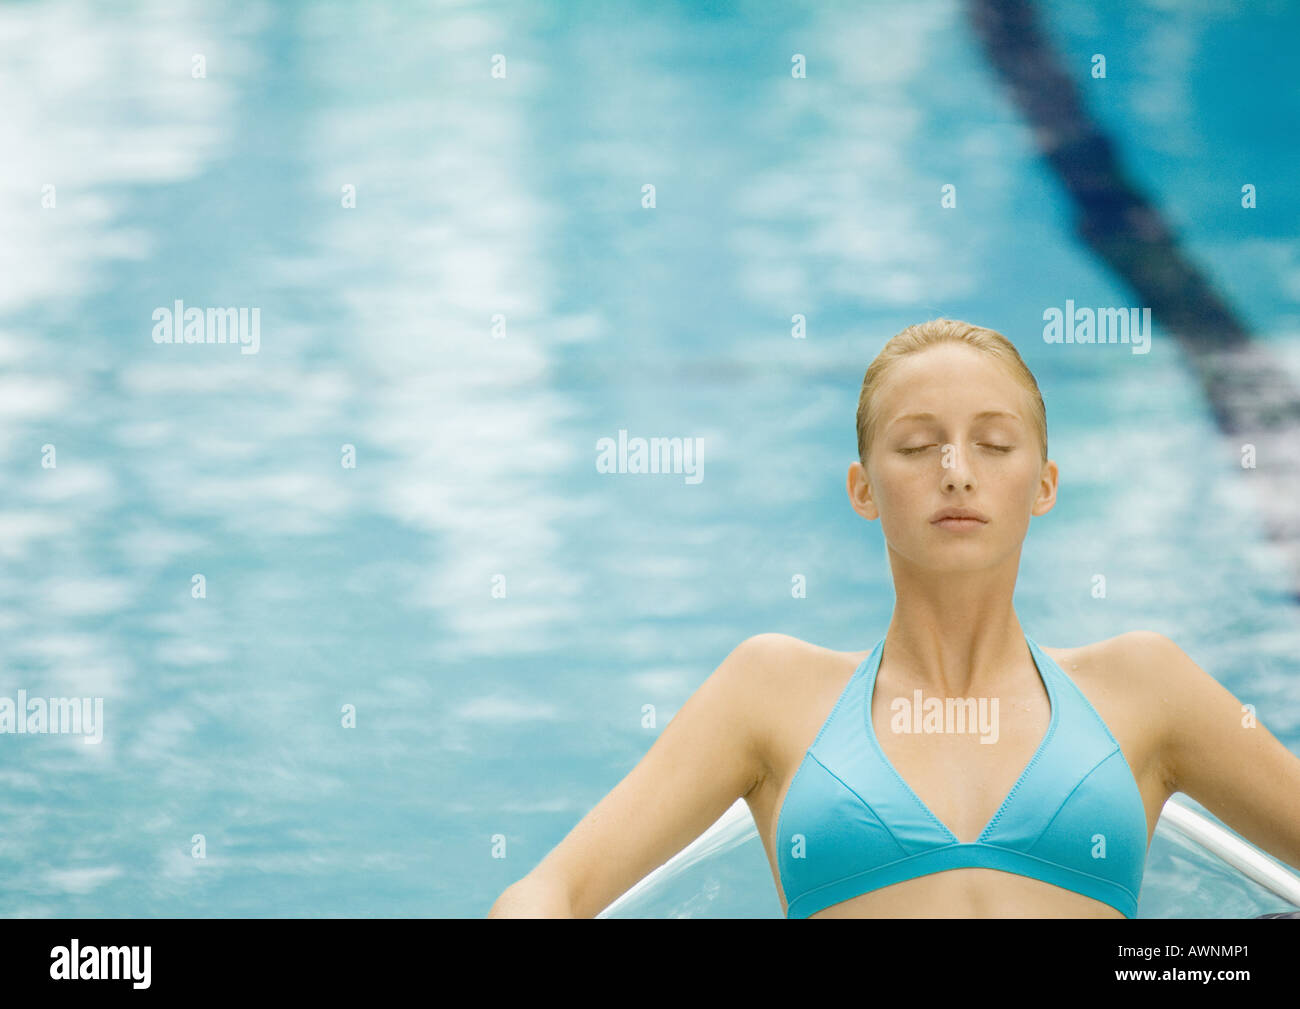 Woman relaxing near pool, eyes closed - Stock Image